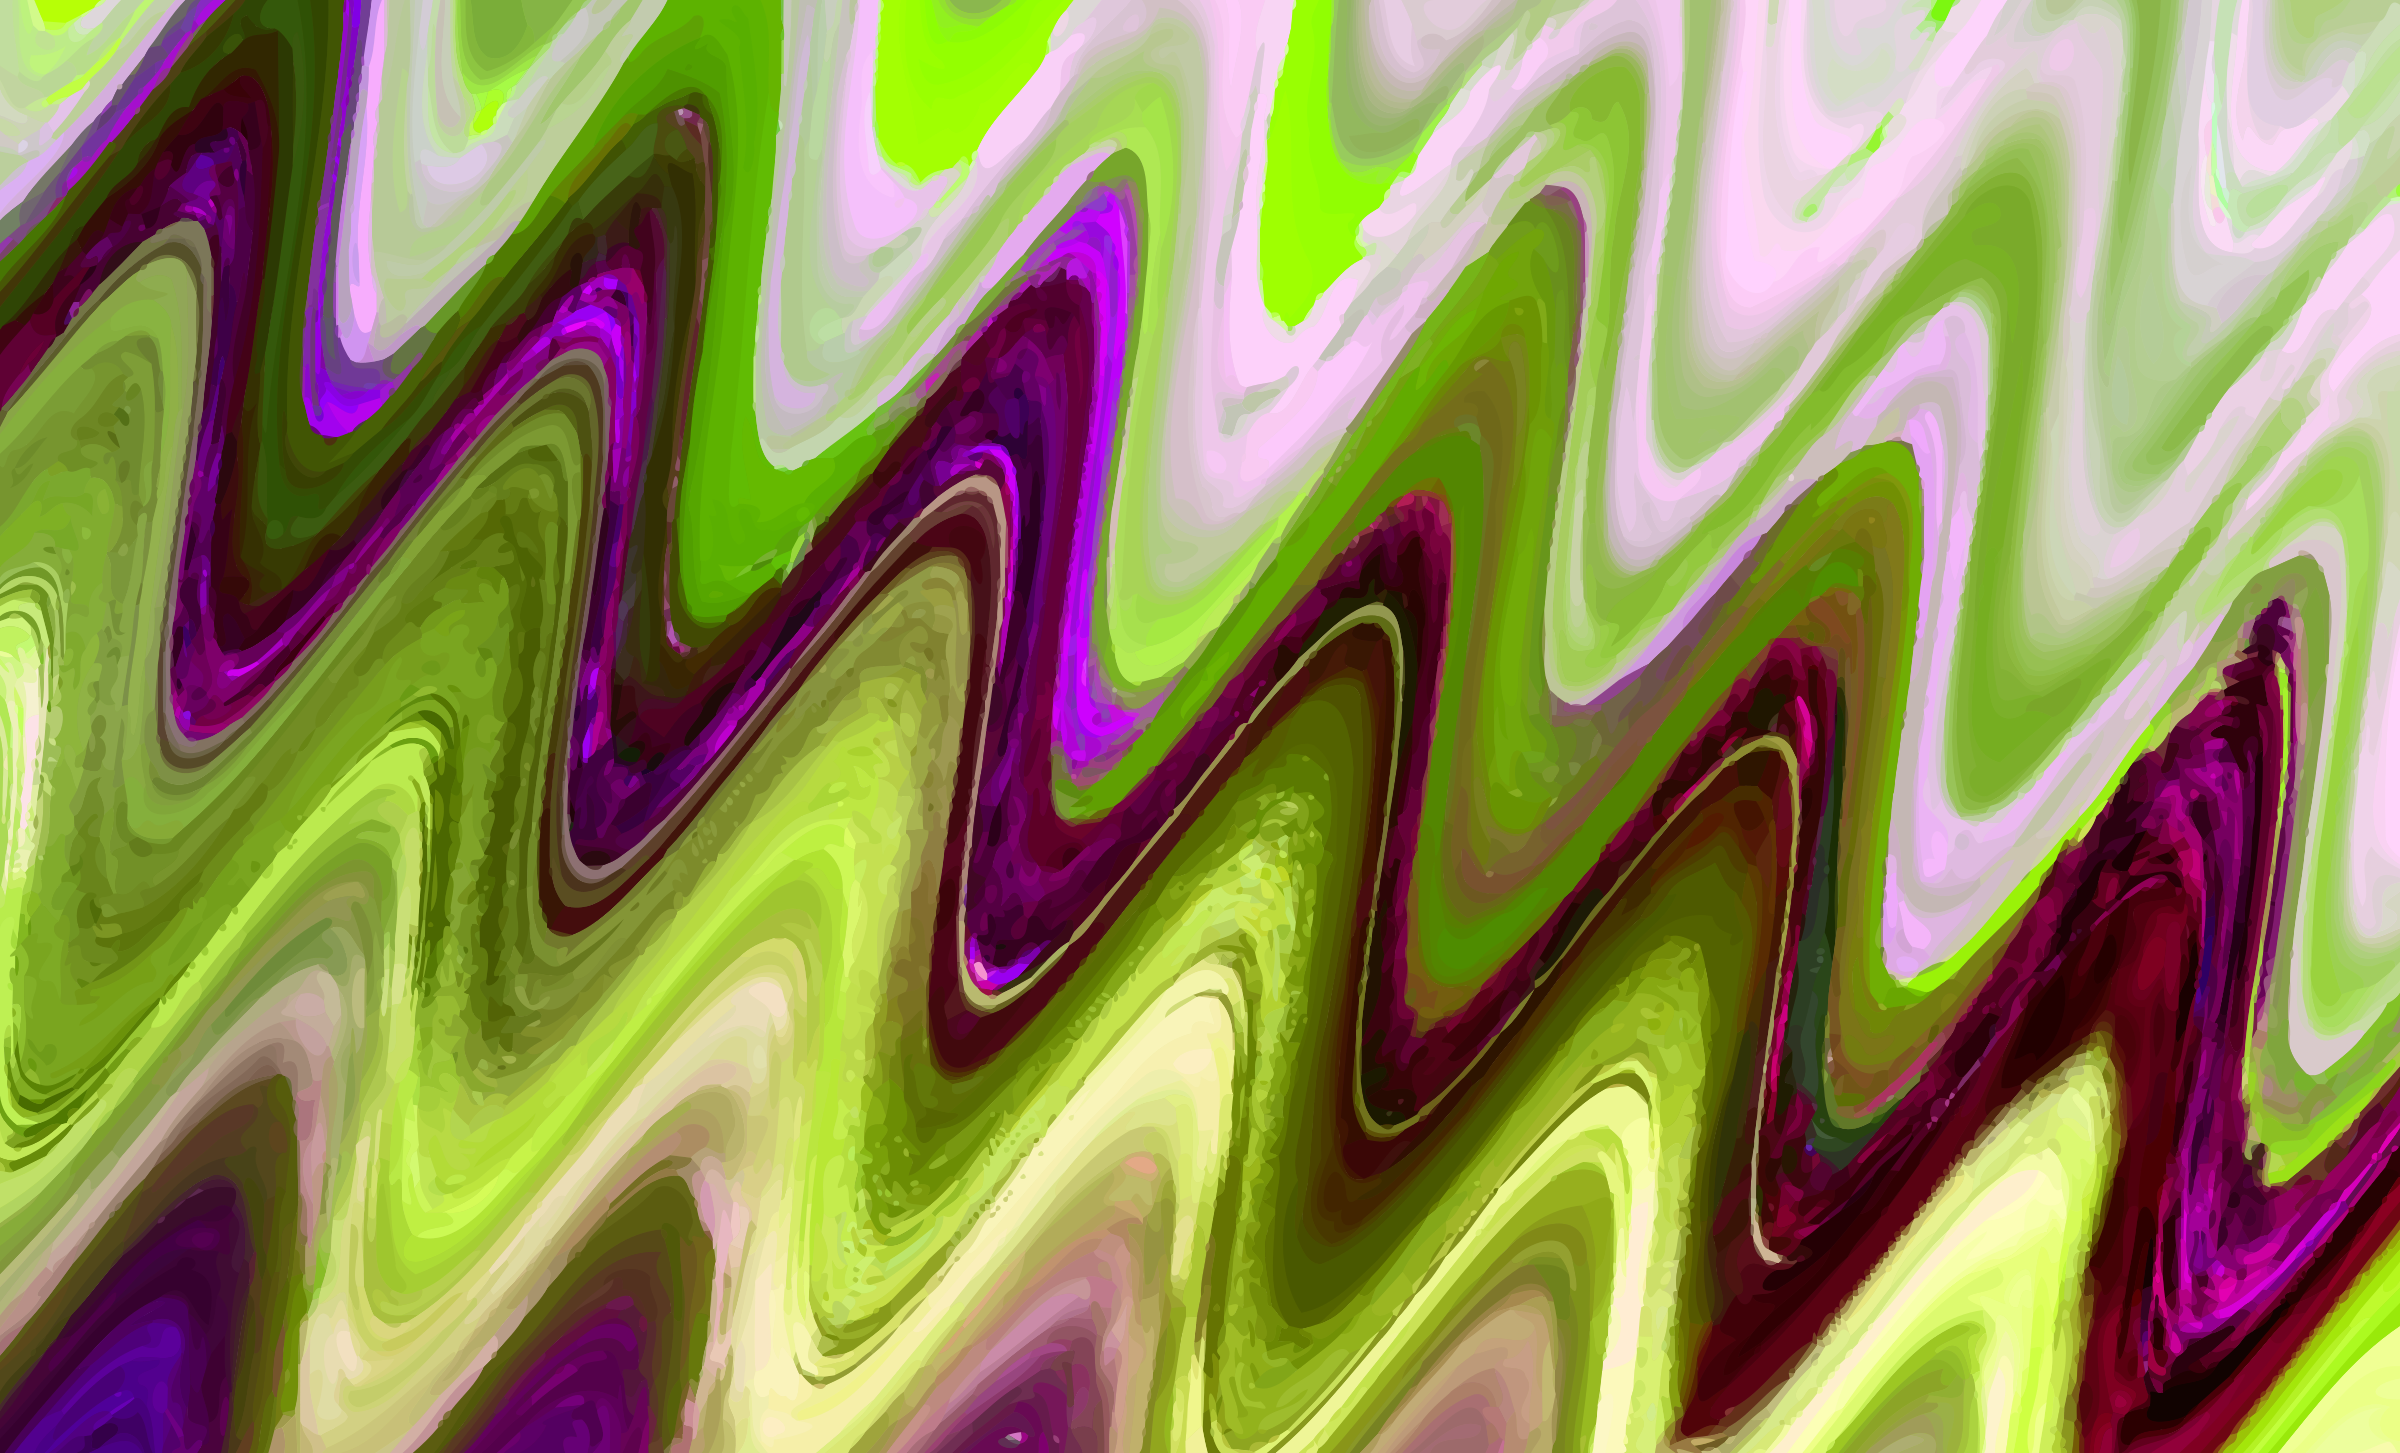 Sine wave background pattern 3 by Firkin